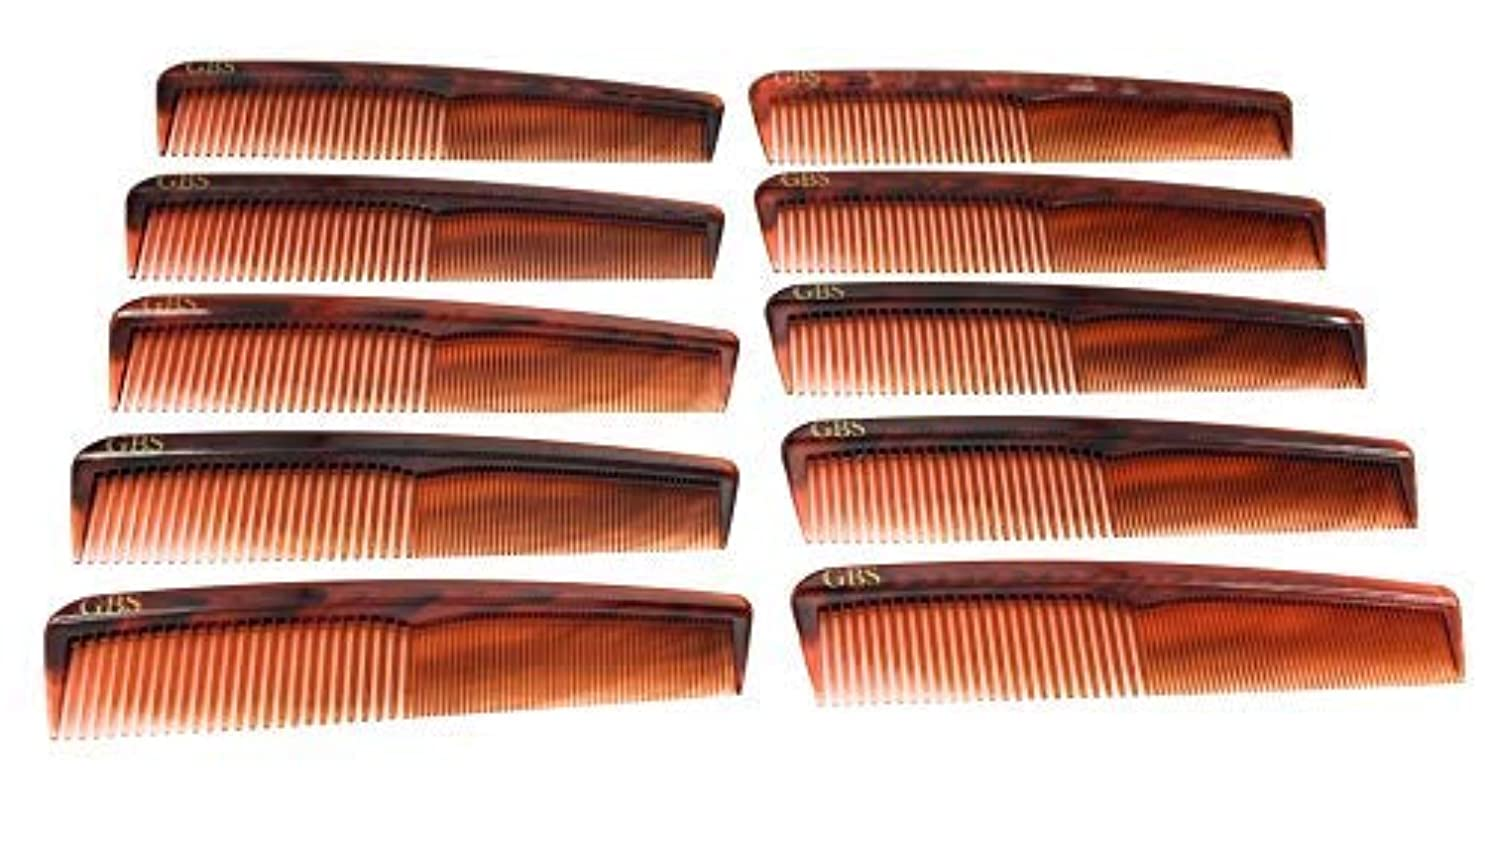 GBS Professional Handmade Grooming Combs - Tortoise Course/Fine Styling Combs - 10 Pack! [並行輸入品]